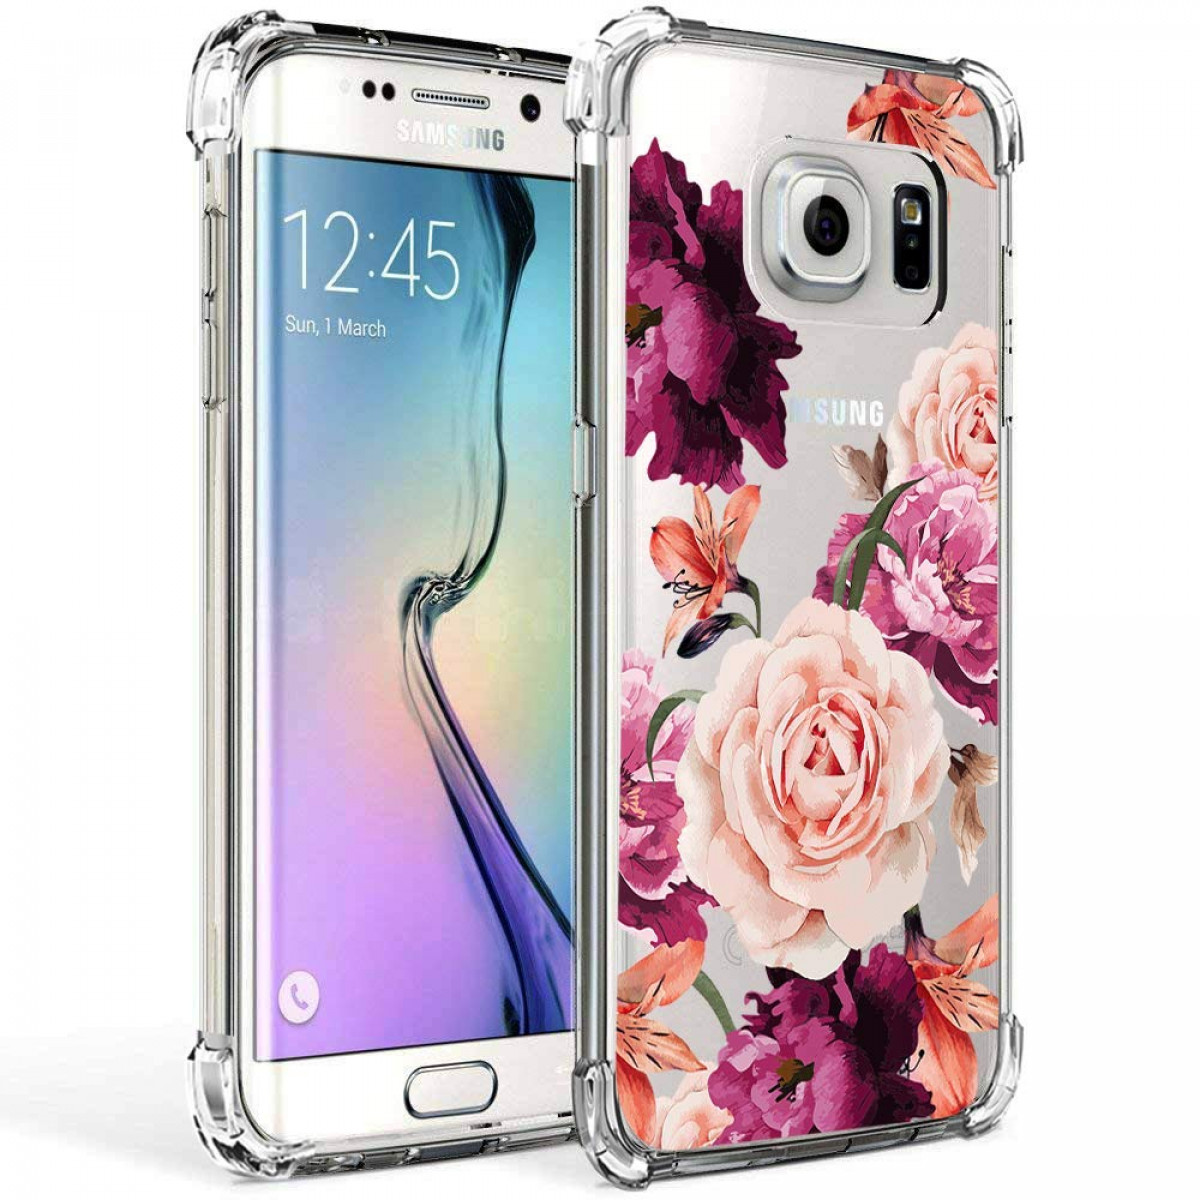 new style 25586 8028d Galaxy S7 Edge Case Girls Women Clear Flowers Design Shockproof Protective  Cell Phone Cases Samsung Galaxy S7 Edge 5.5 Inch Cute Floral Pattern Print  ...